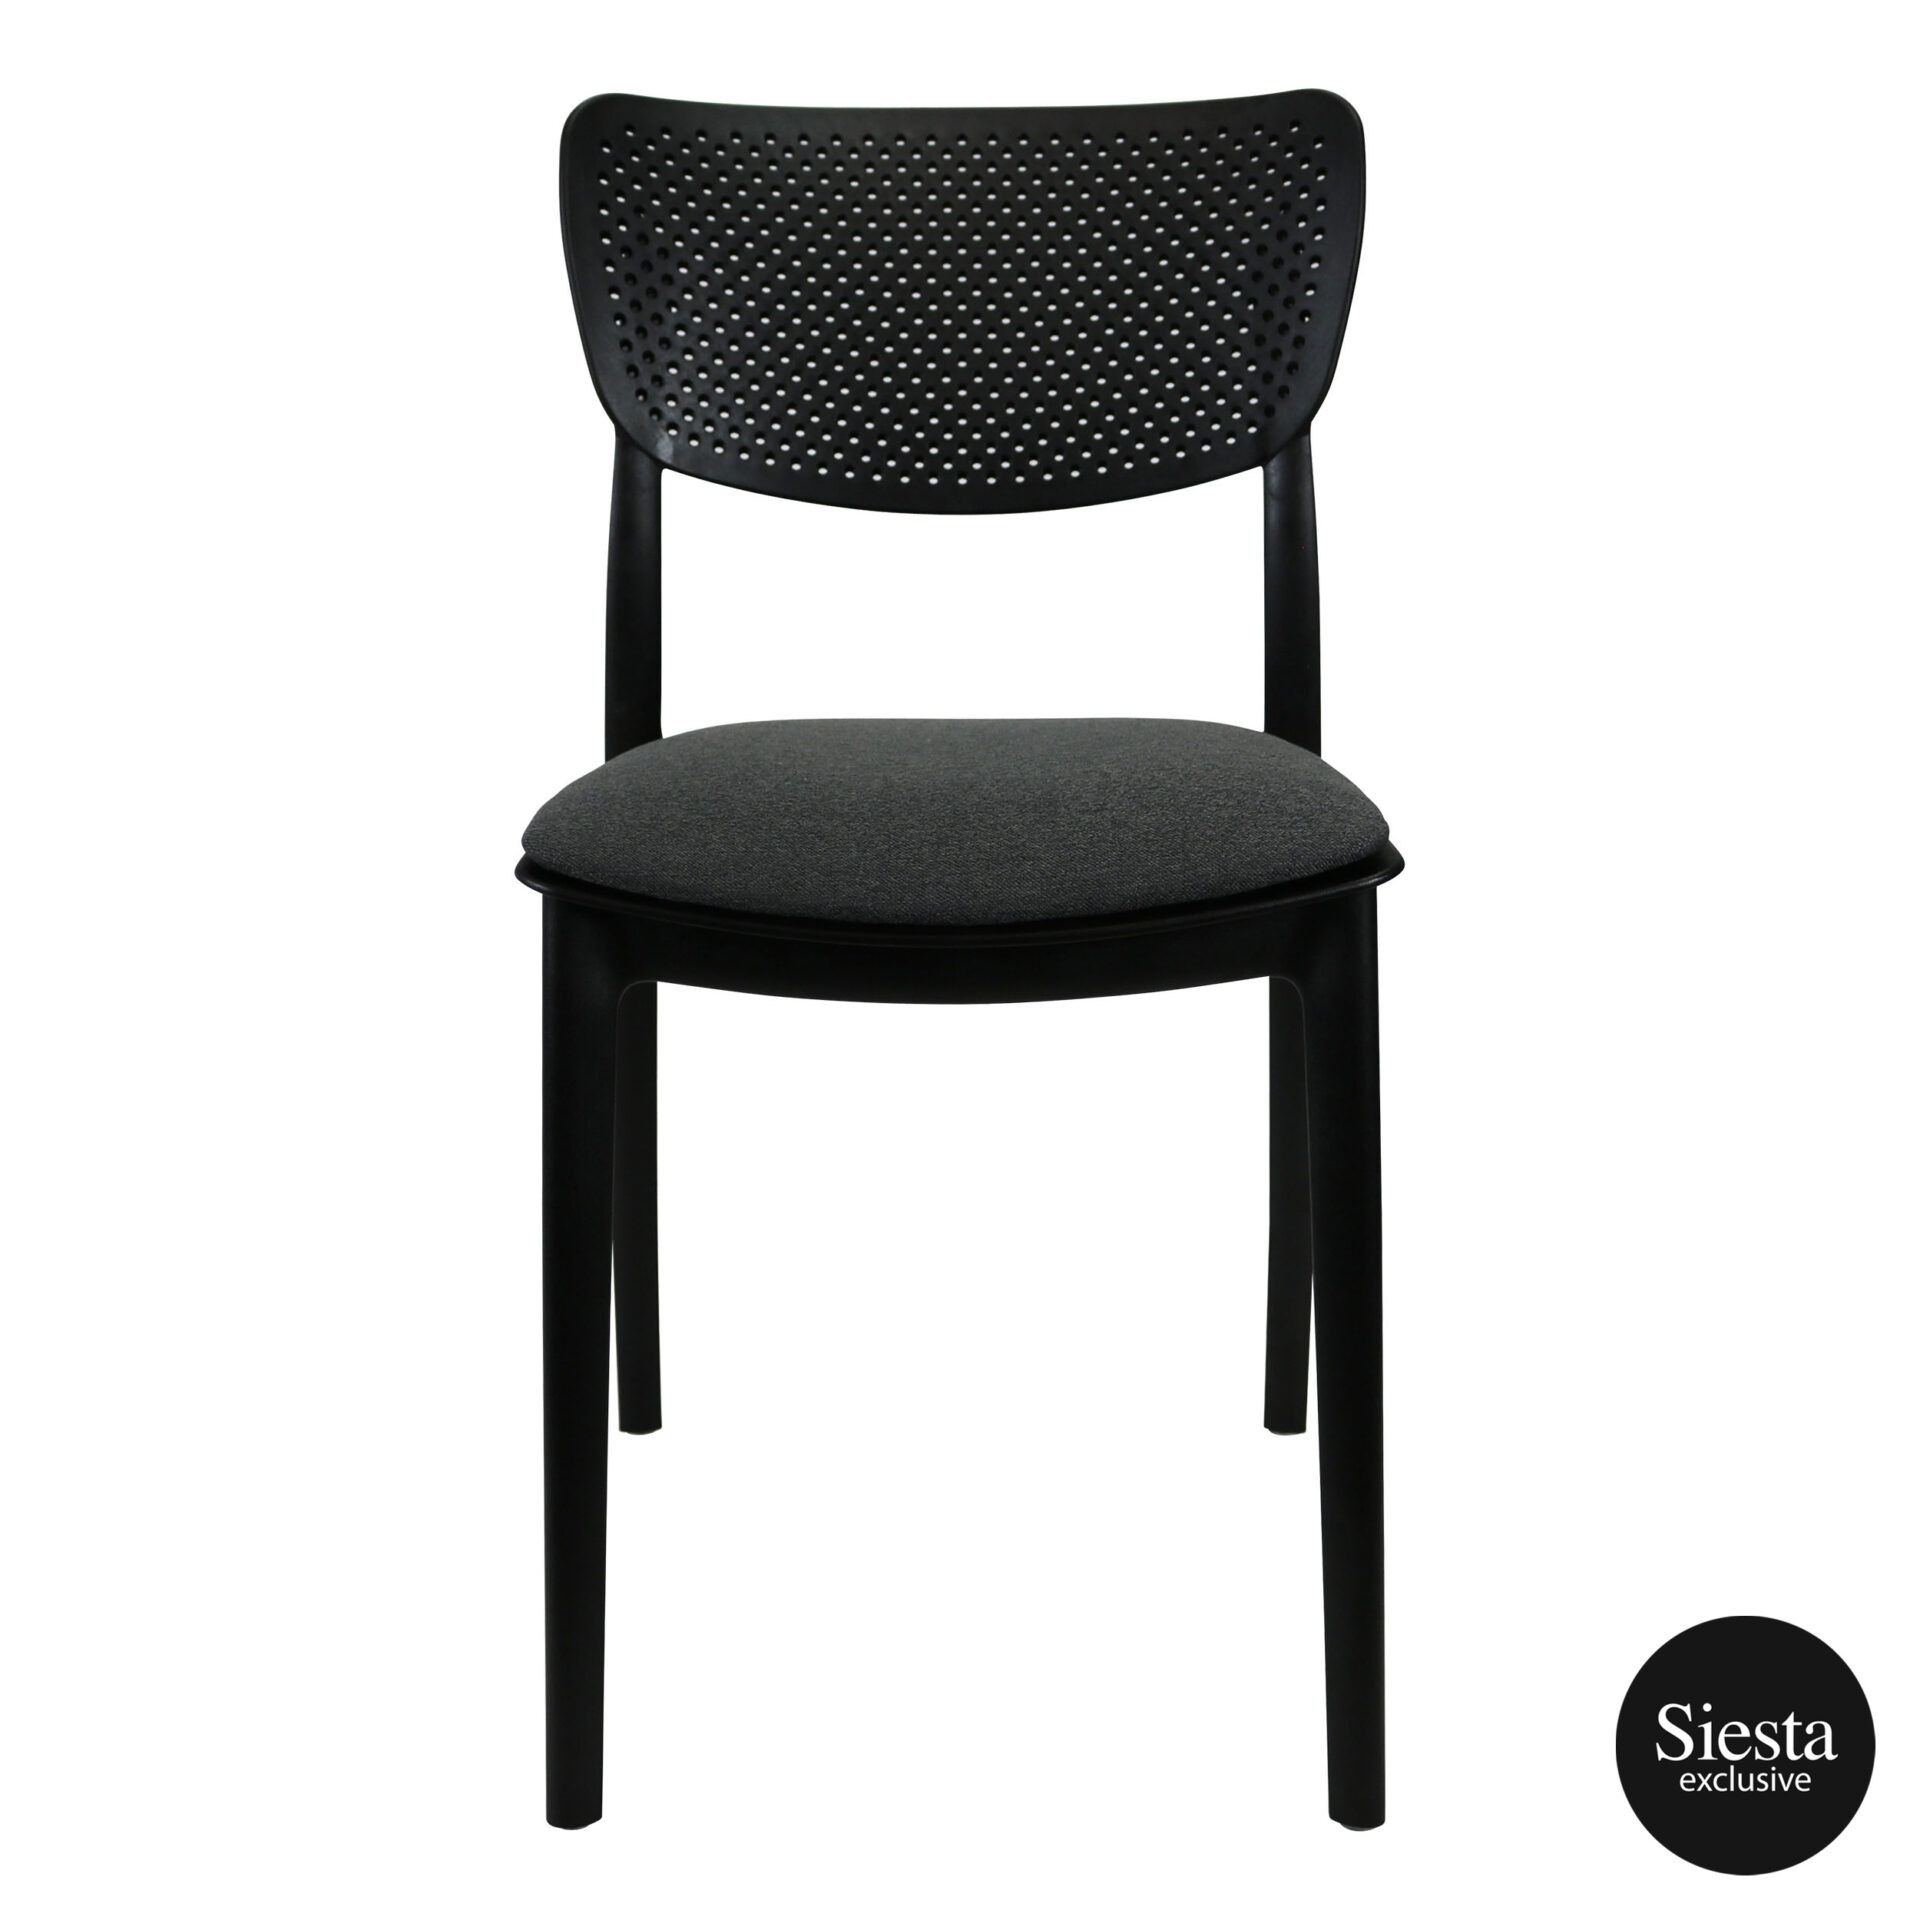 lucy chair black c6